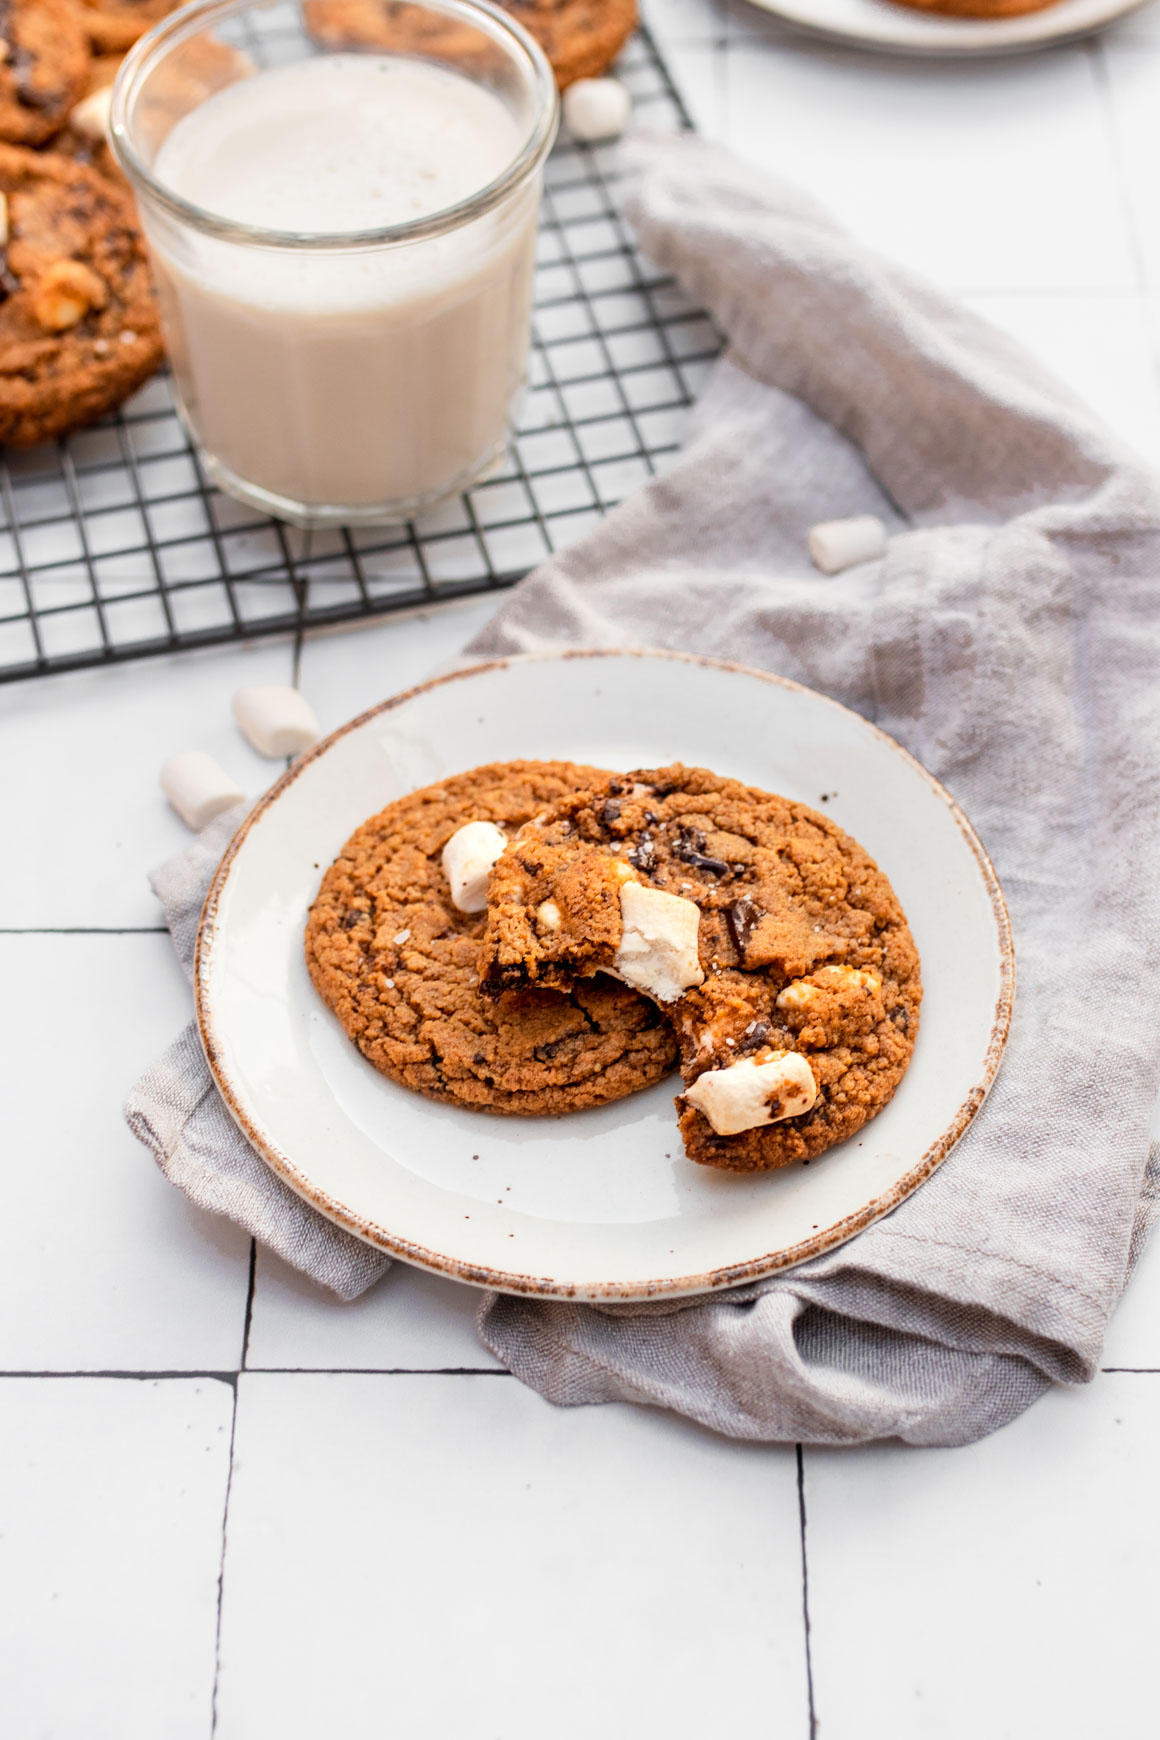 plate with two s'mores cookies and a glass of milk